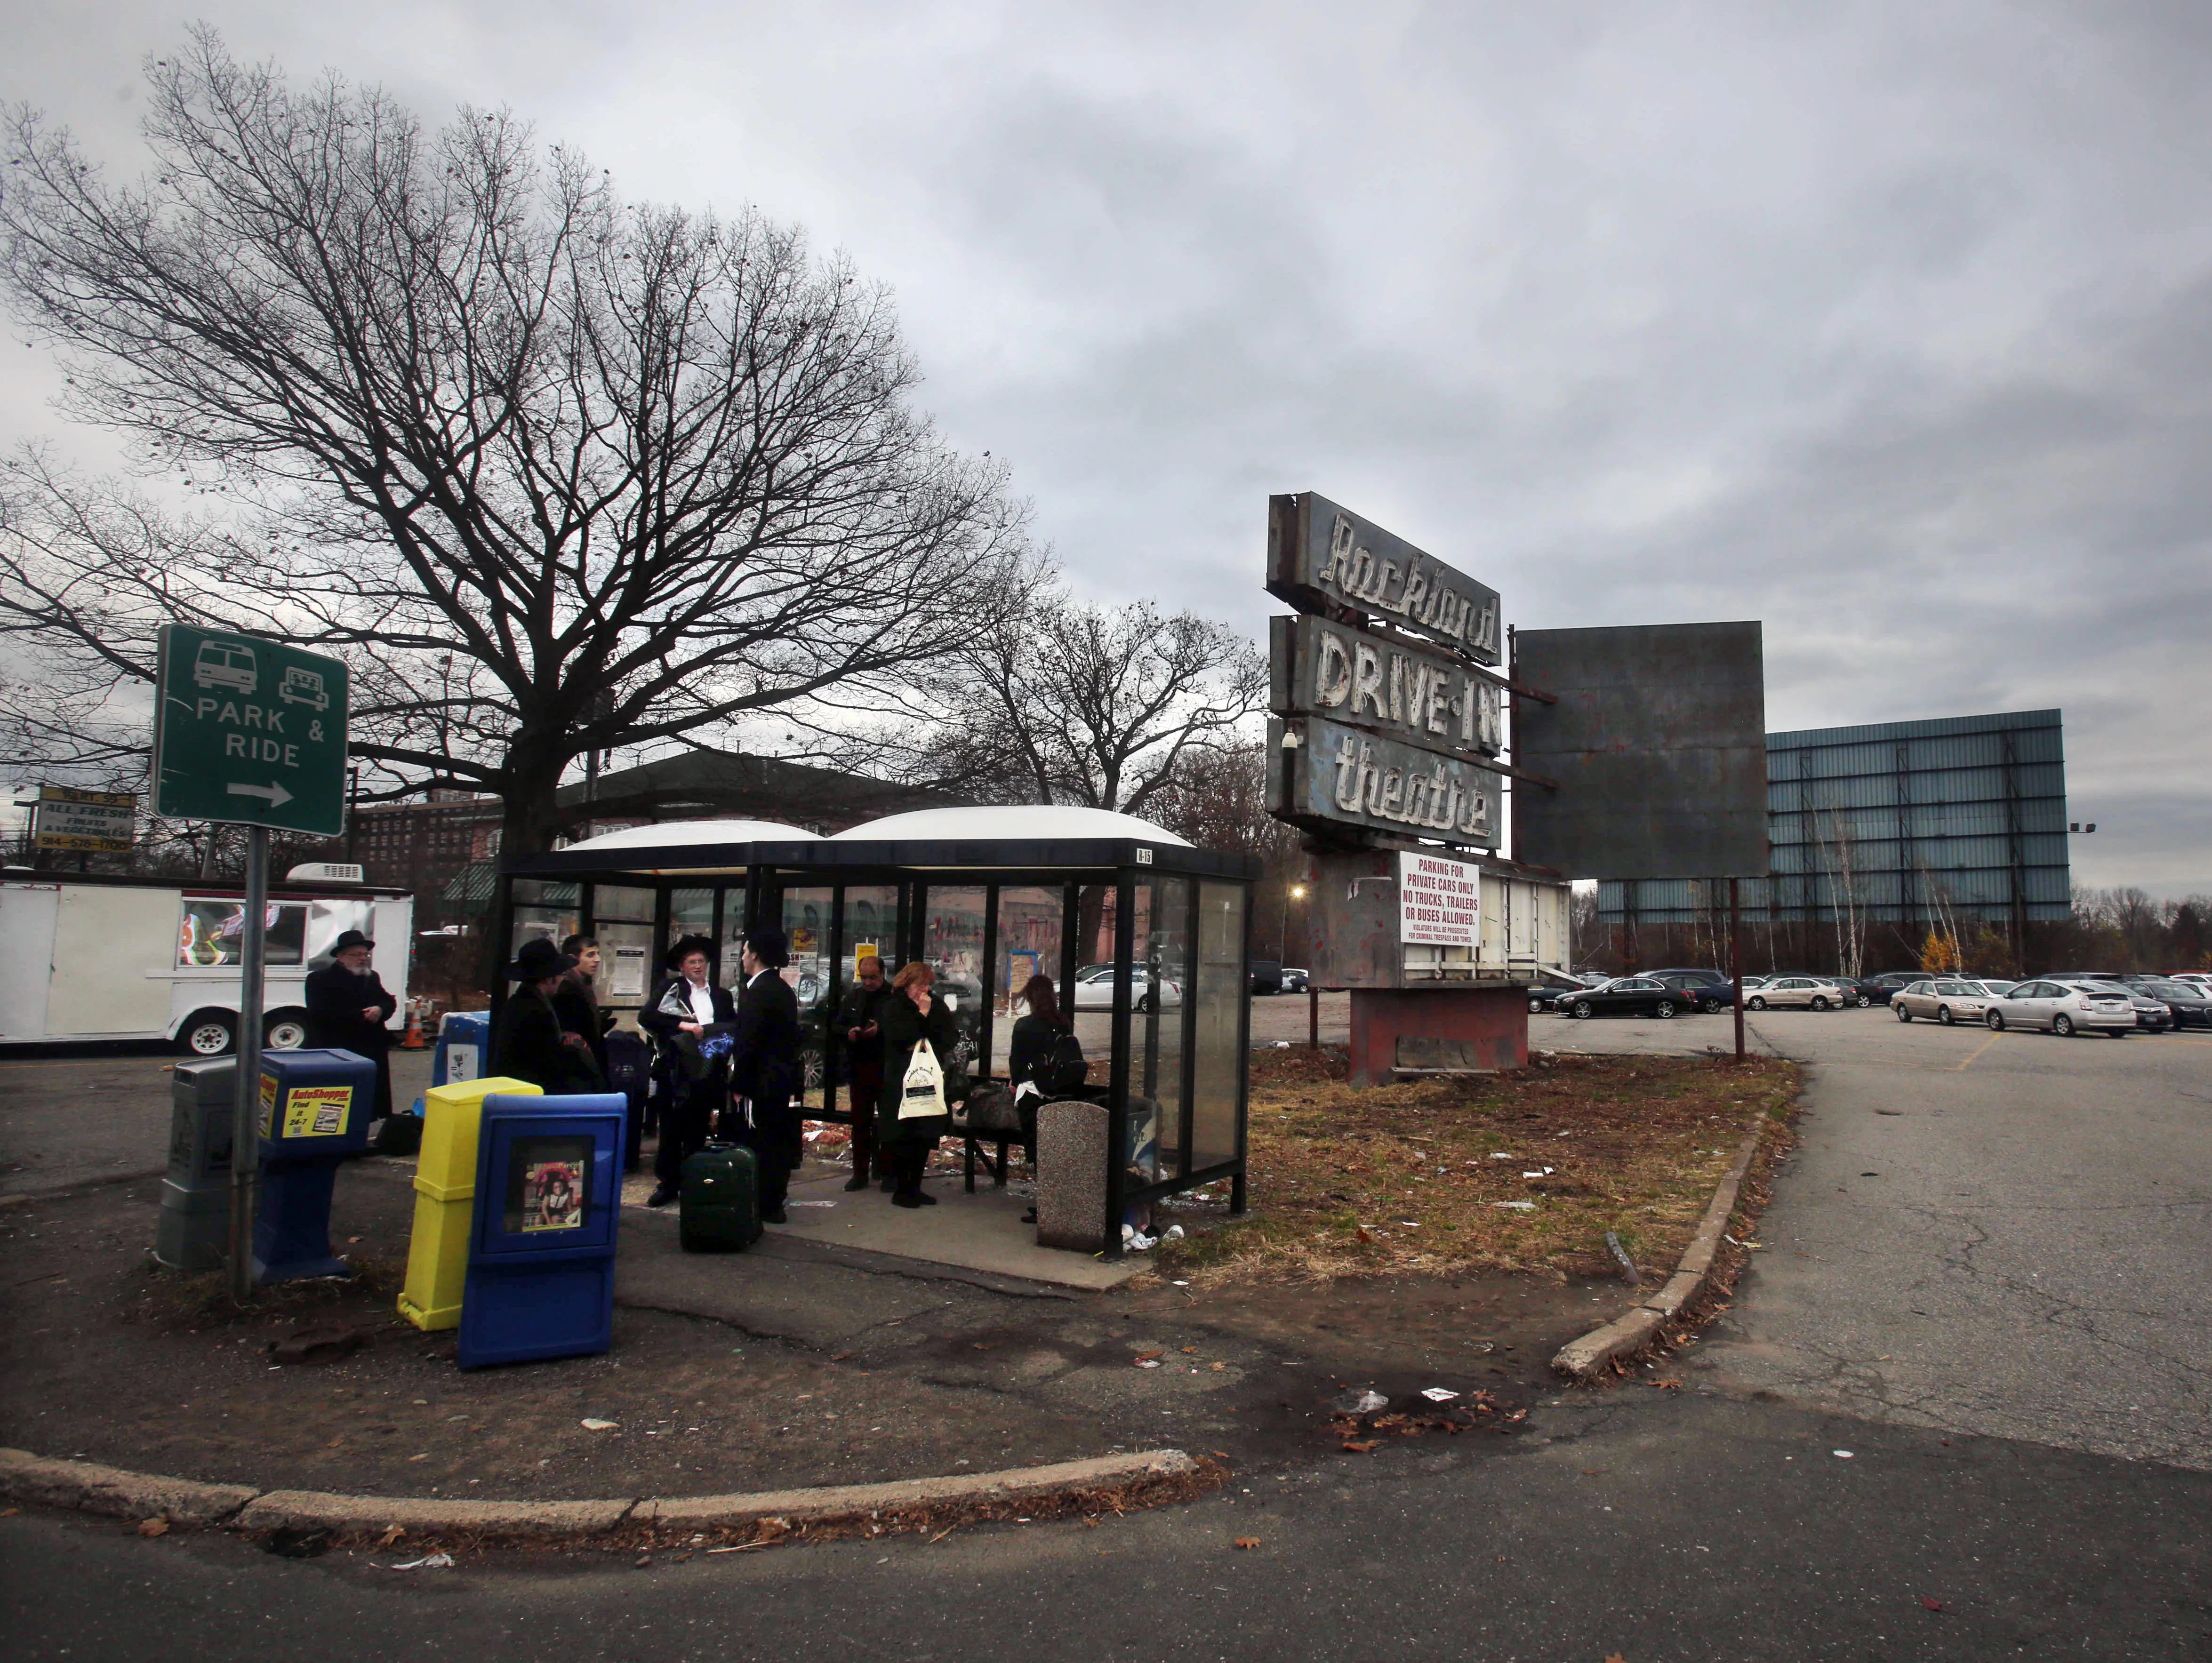 a bus stop in front of the old rockland drive in theater [ 2352 x 1764 Pixel ]